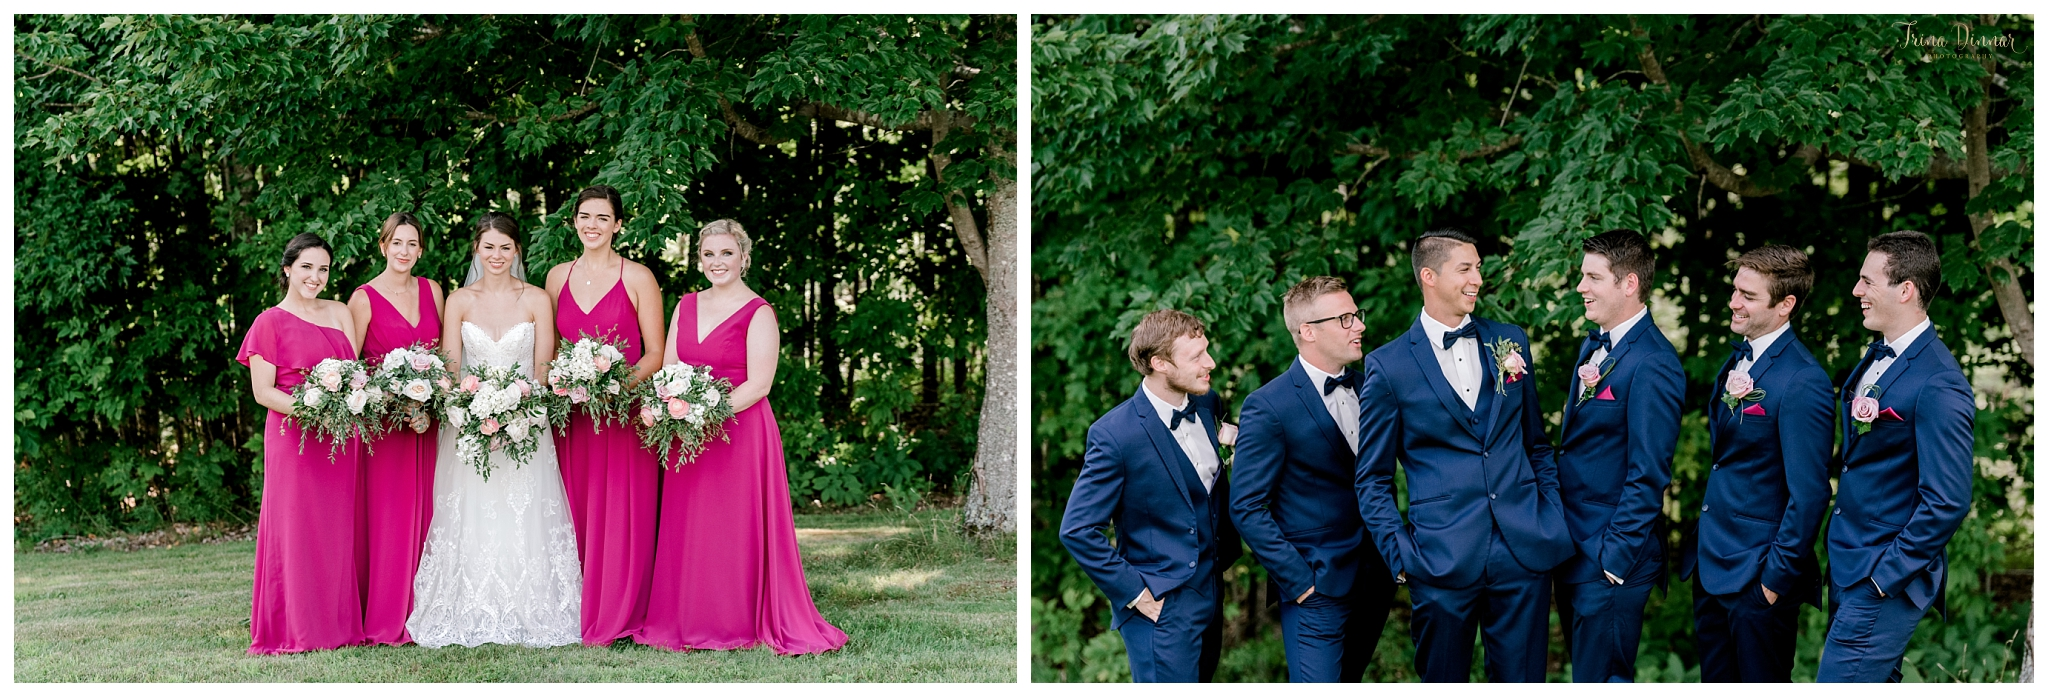 Bridesmaid and Groomsmen Wedding Party Portraits